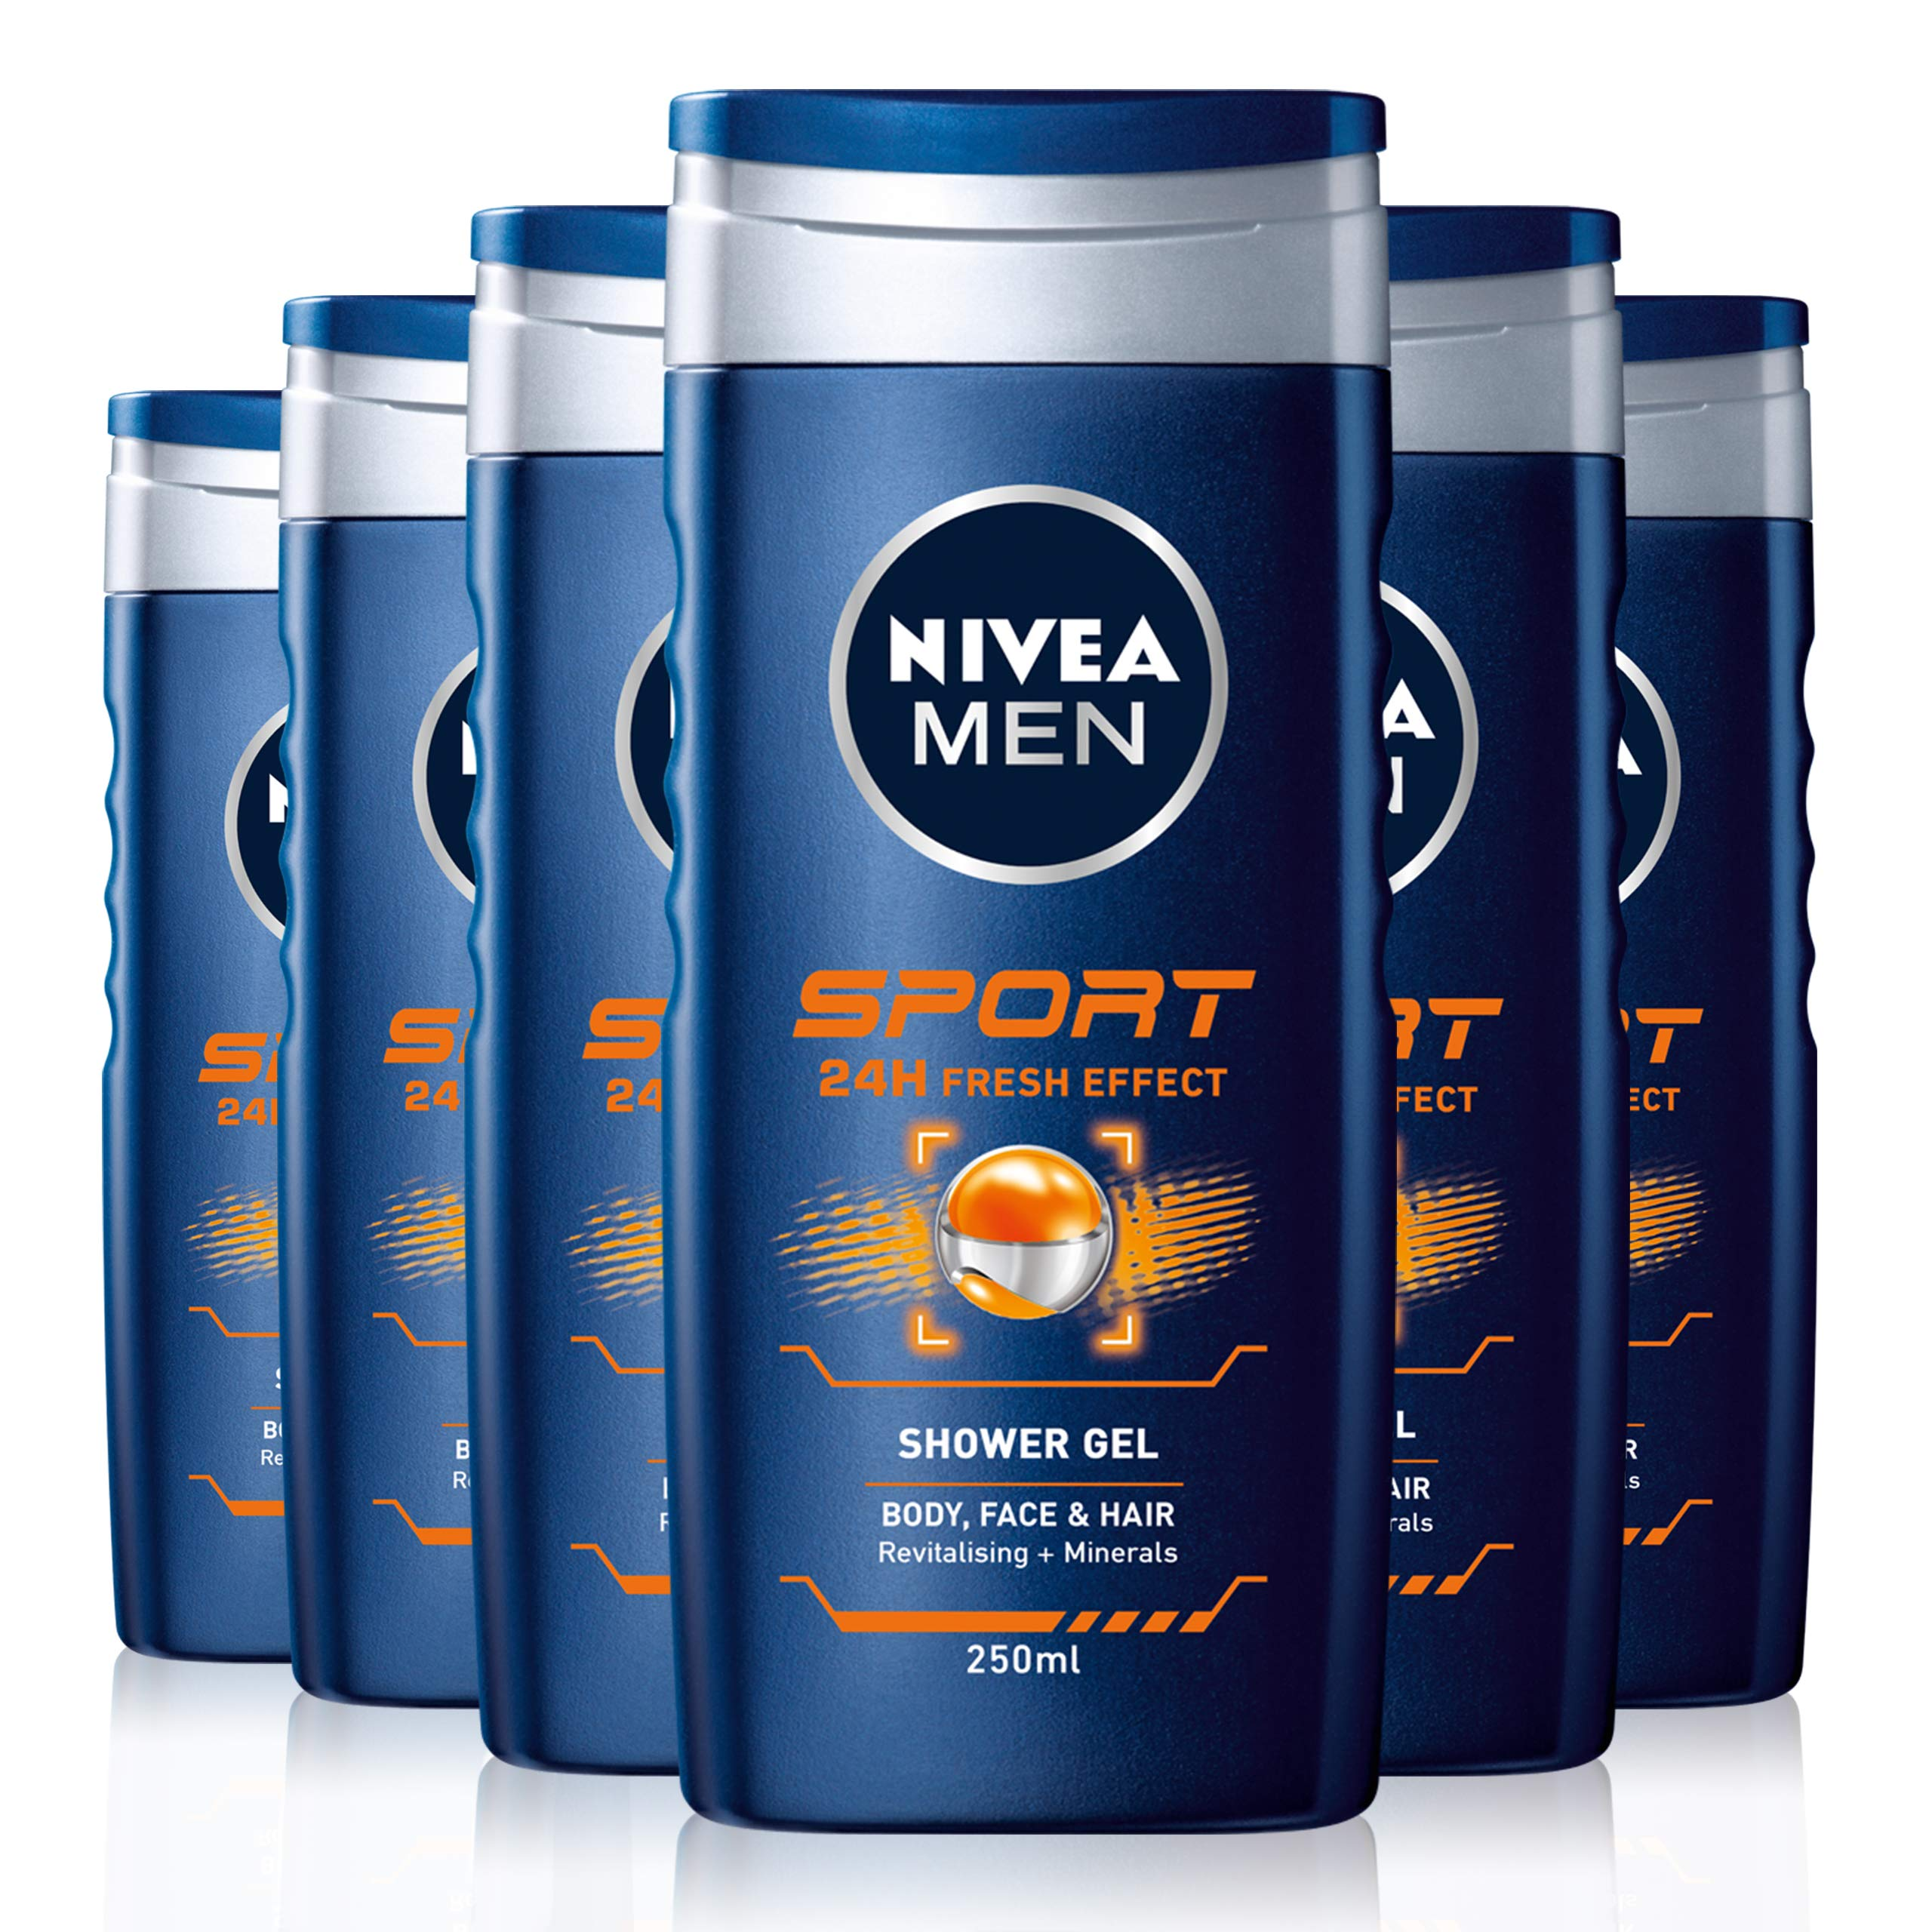 NIVEA MEN Sport Shower Gel Pack of 6 (6 x 500ml), Refreshing Body Wash with Lime Scent, All-in-1 Shower Gel for Men, Strong NIVEA MEN Shower Gel